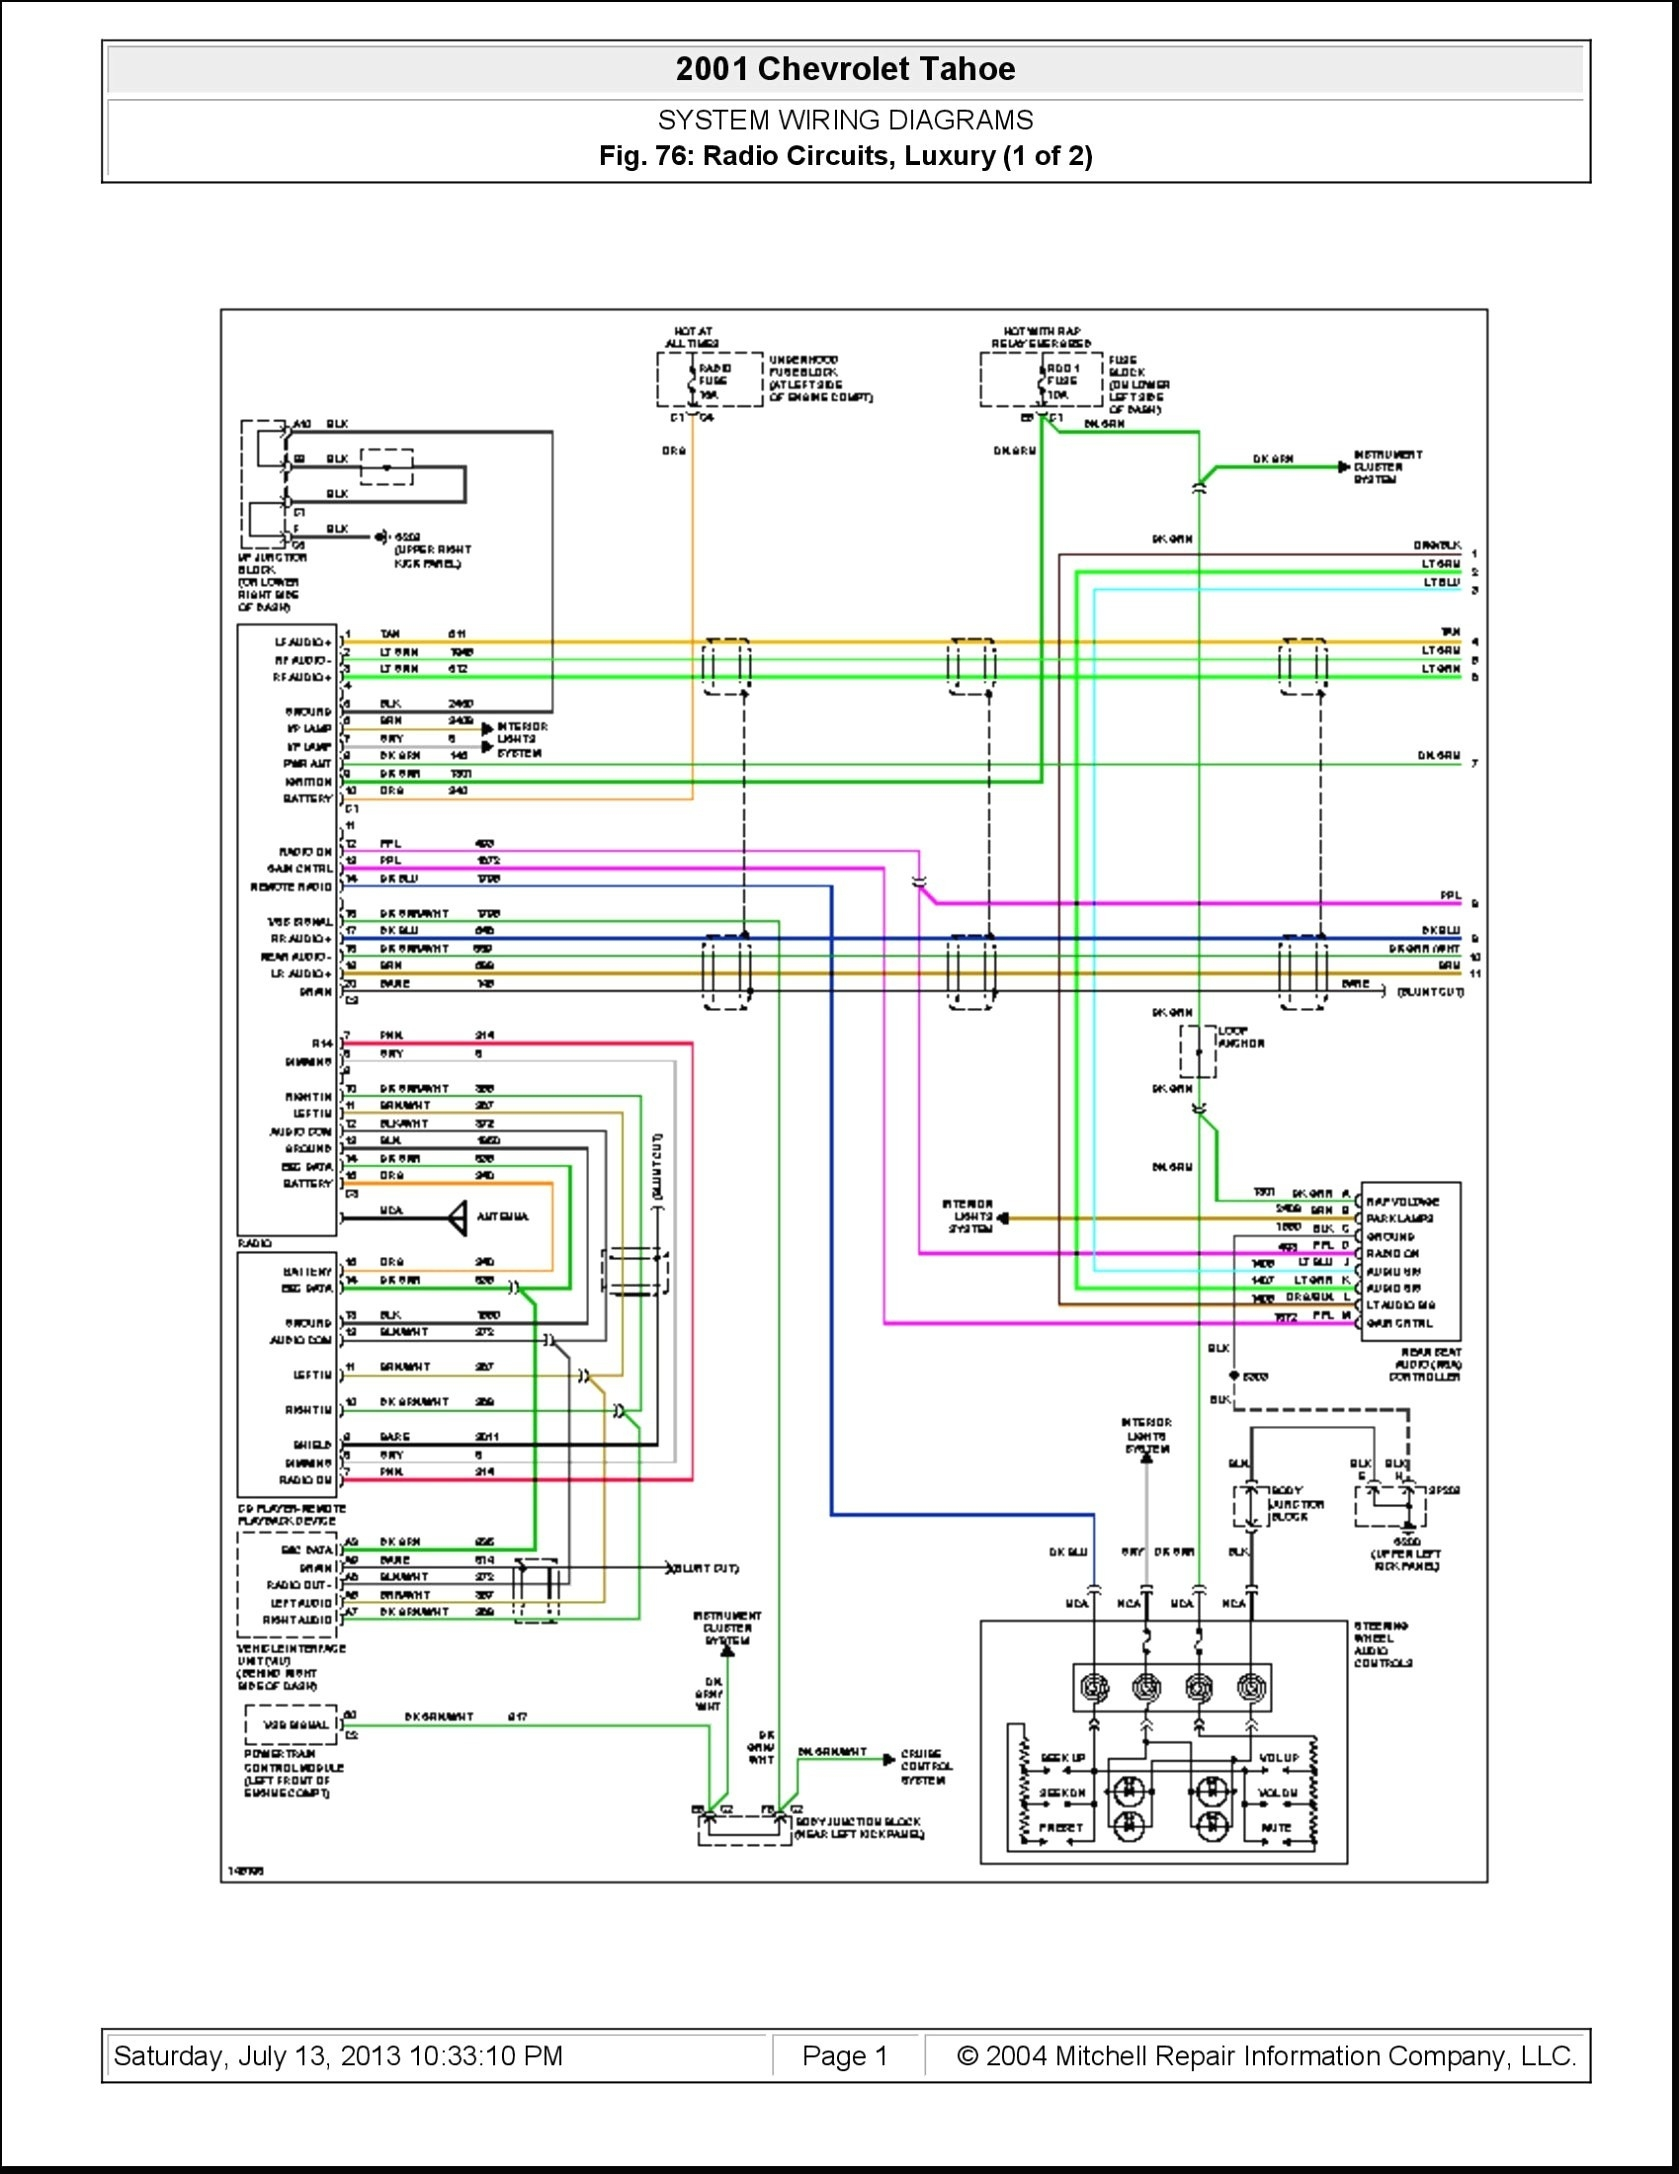 2004 malibu stereo wiring diagram free picture 2004 chevy malibu radio wiring diagram | free wiring diagram #9